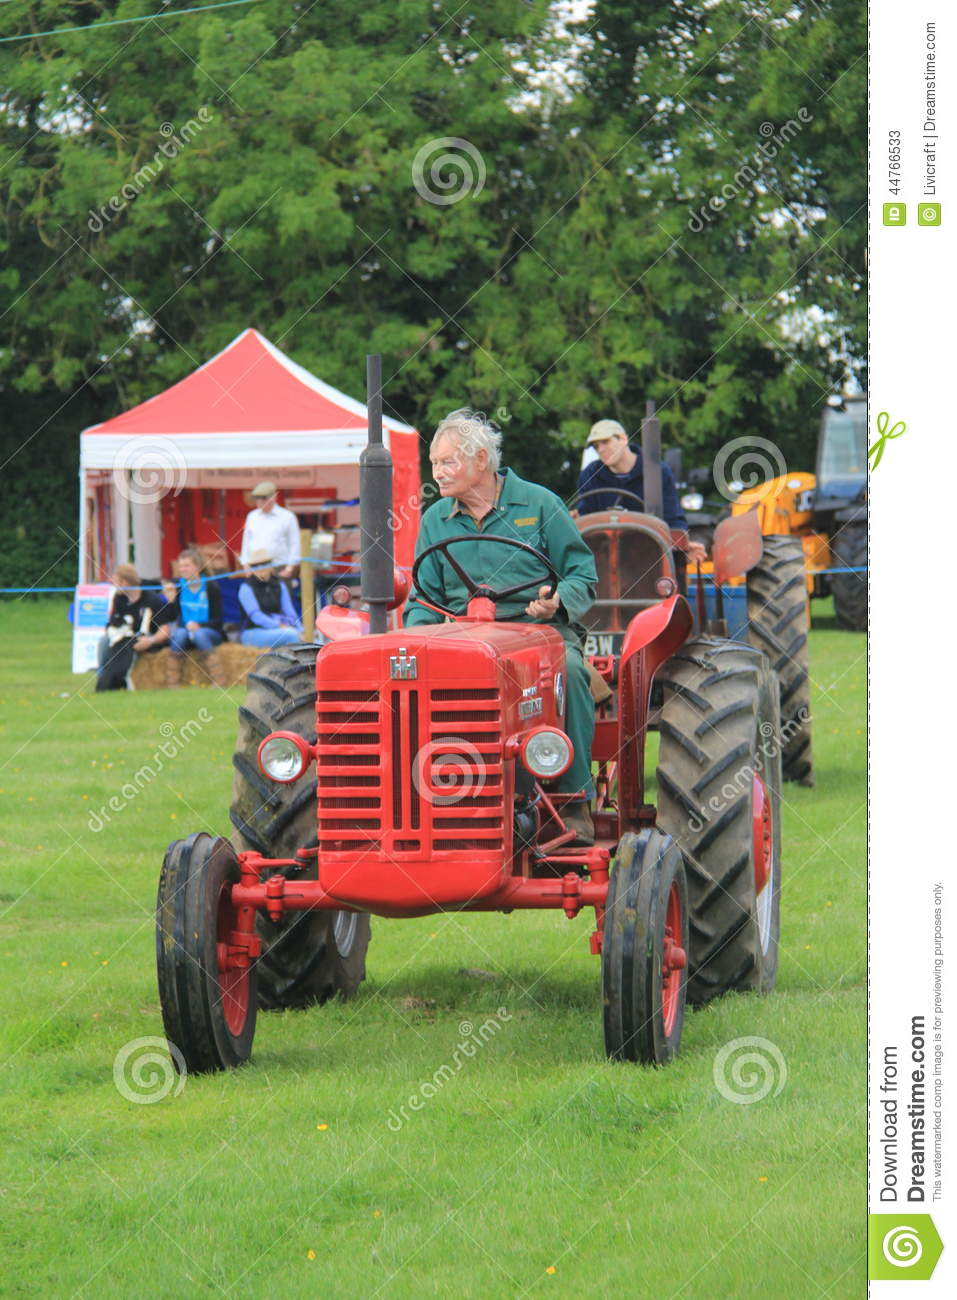 Tractor Parade Seat : Tractor id parade editorial stock photo image of near